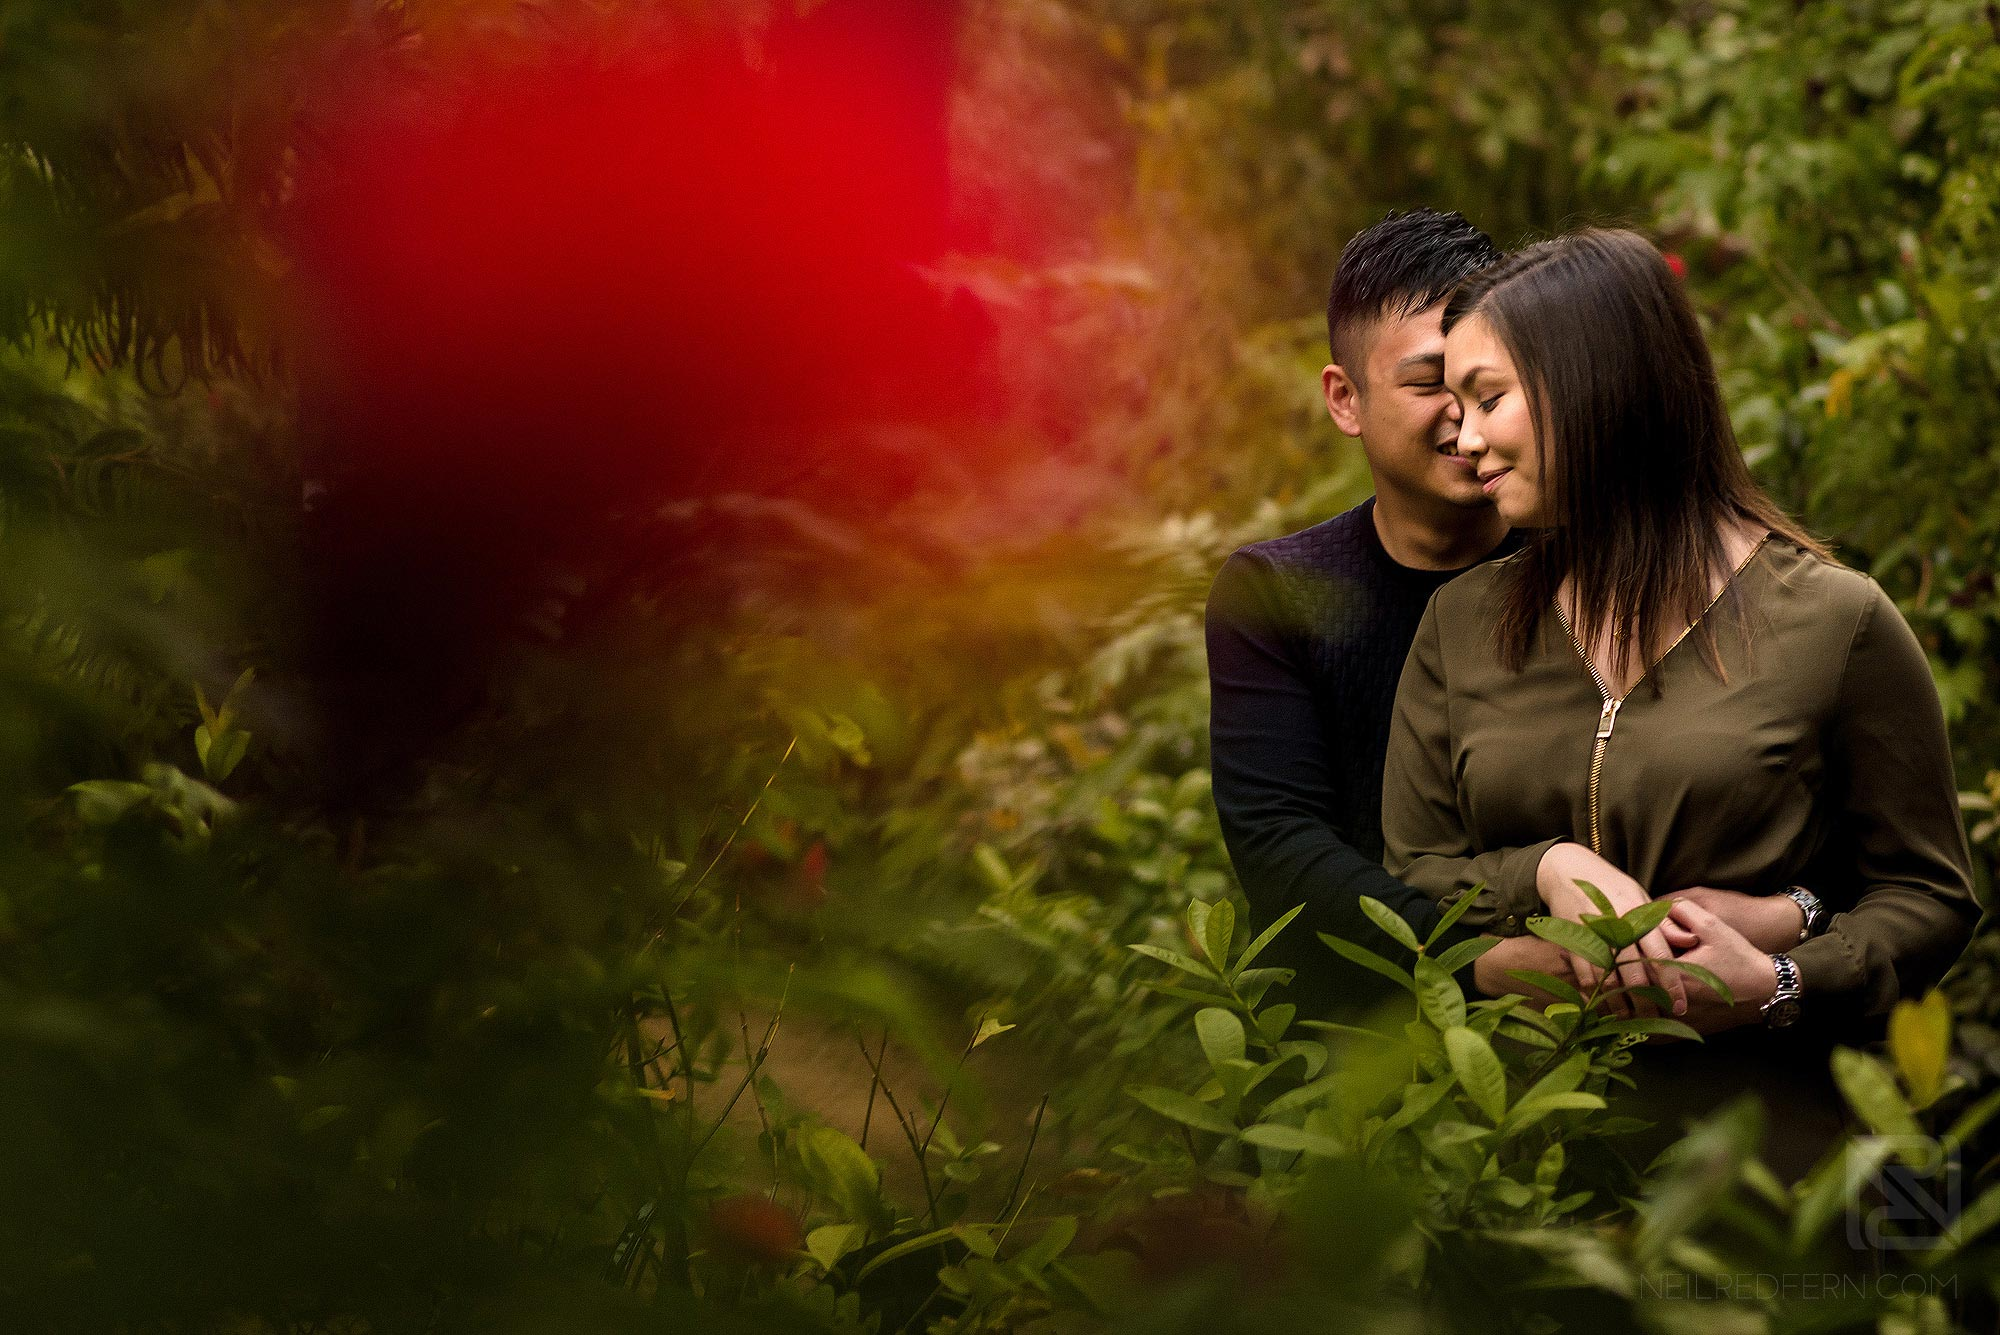 engagement shoot photograph in Kowloon Park in Hong Kong